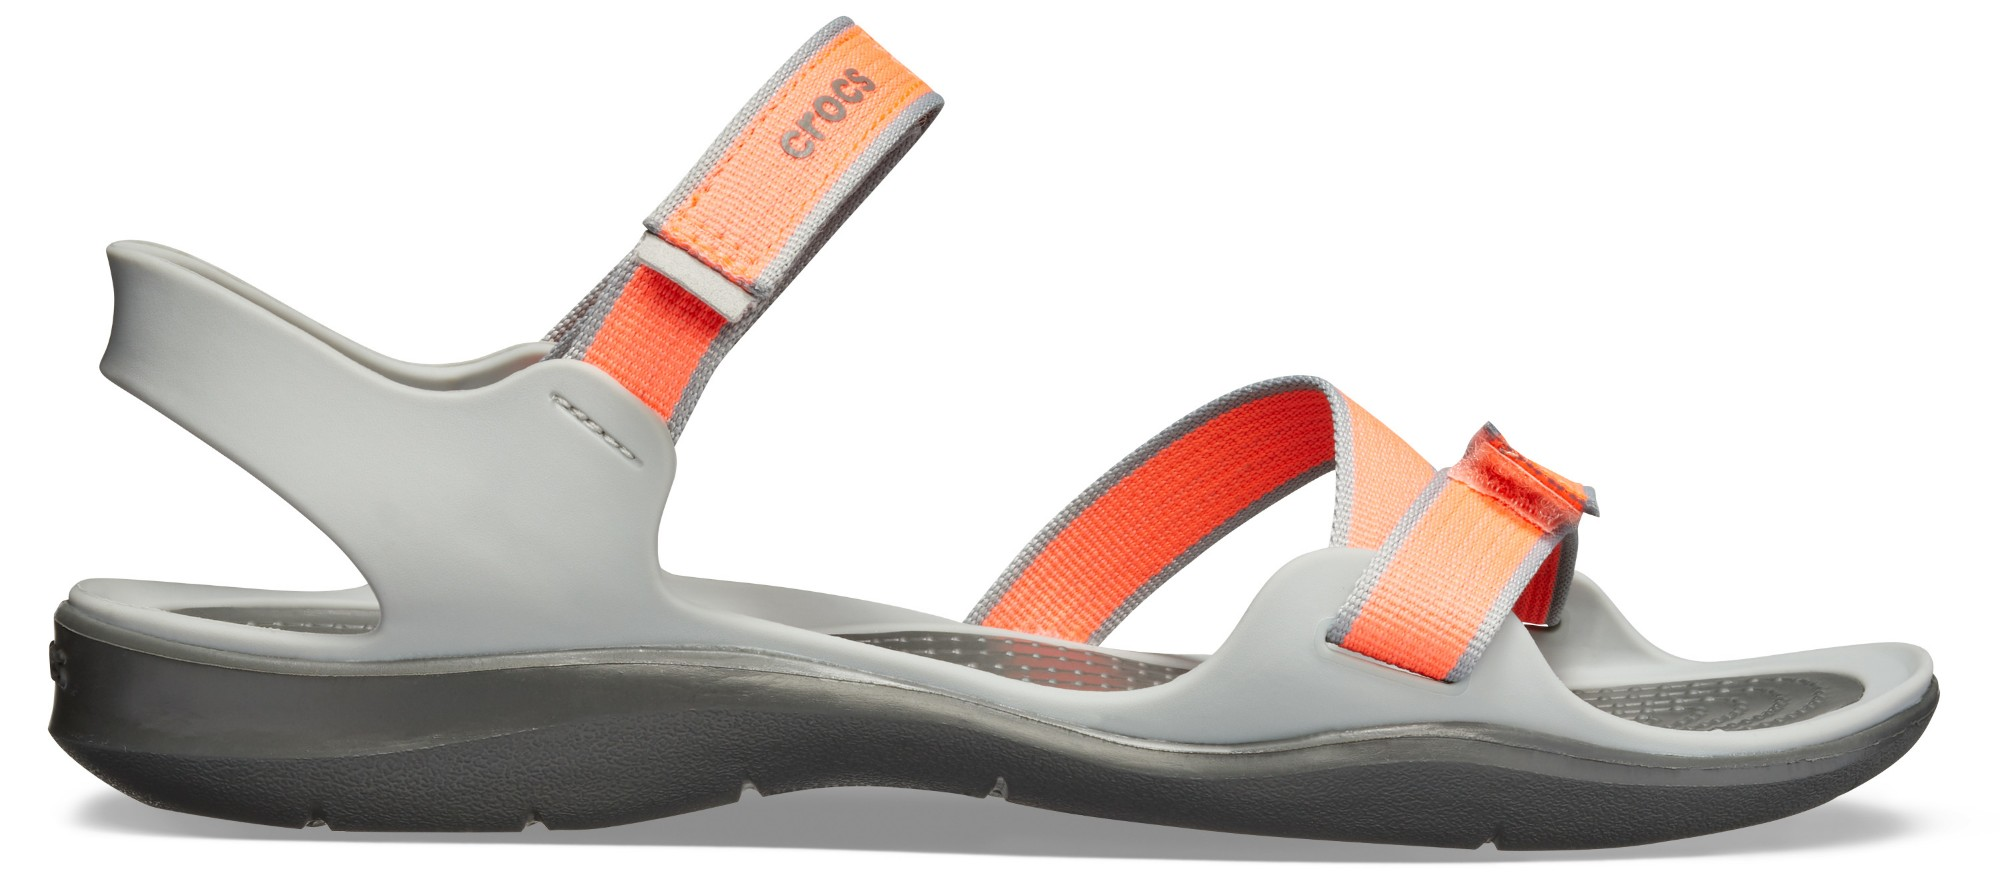 Crocs™ Women's Swiftwater Webbing Sandal Bright Coral/Light Grey 35